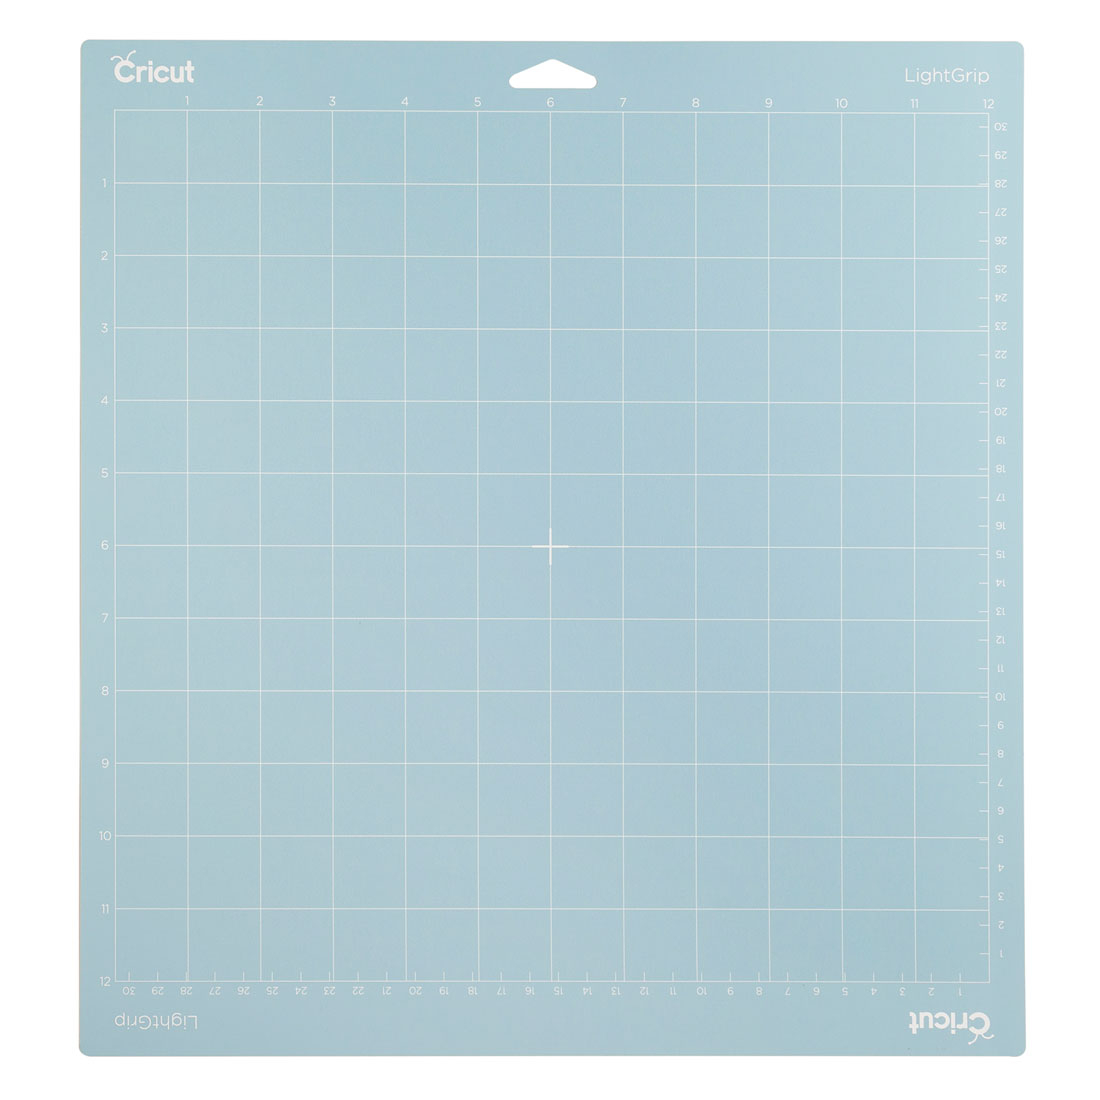 Cricut 12x12 lightgrip adhesive cutting mat 1